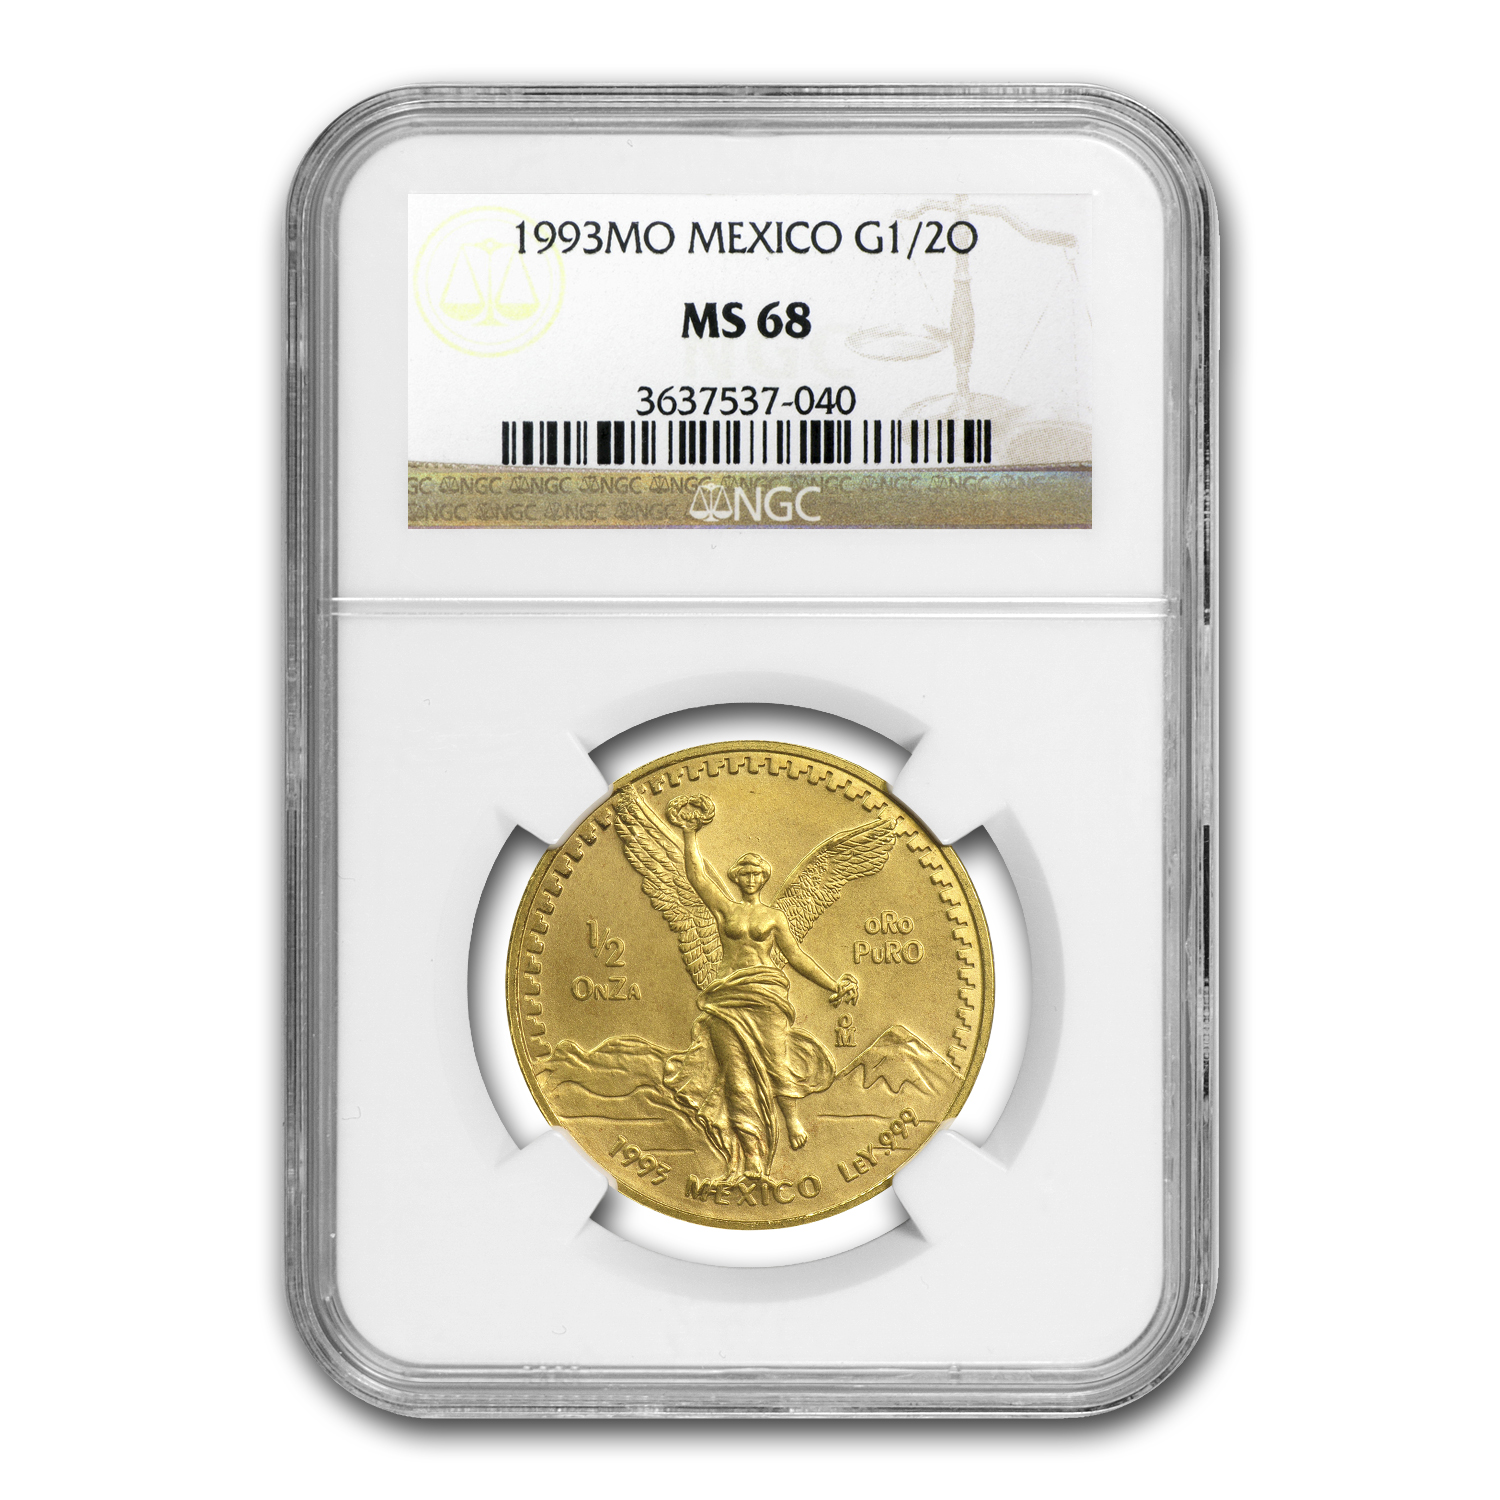 1993 Mexico 1/2 oz Gold Libertad MS-68 NGC